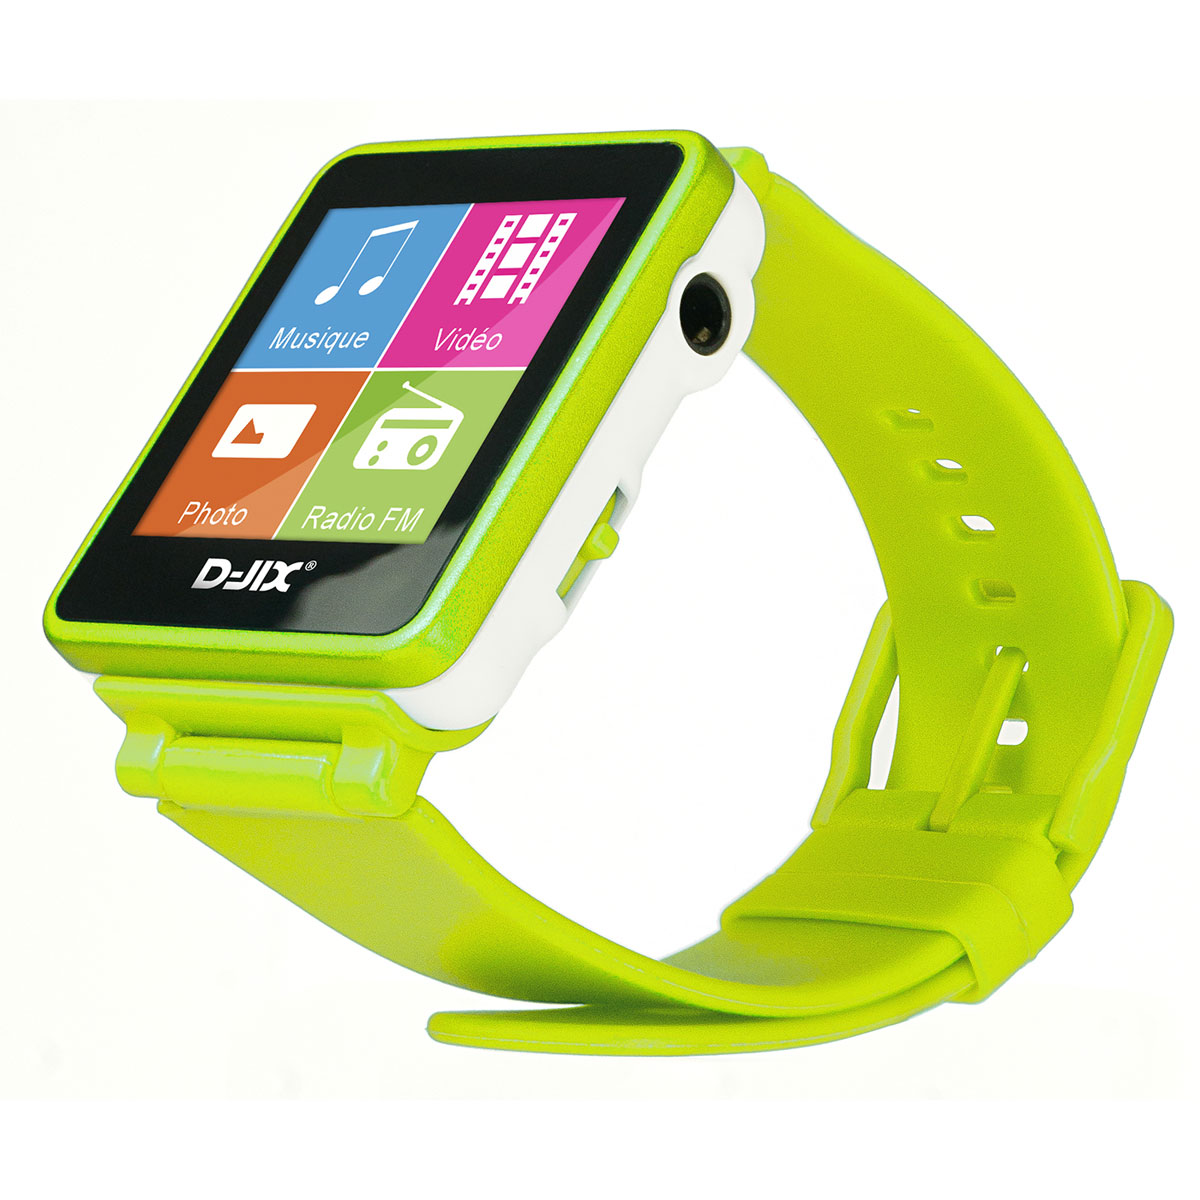 d jix d watch vert 4 go lecteur mp3 ipod d jix sur ldlc. Black Bedroom Furniture Sets. Home Design Ideas